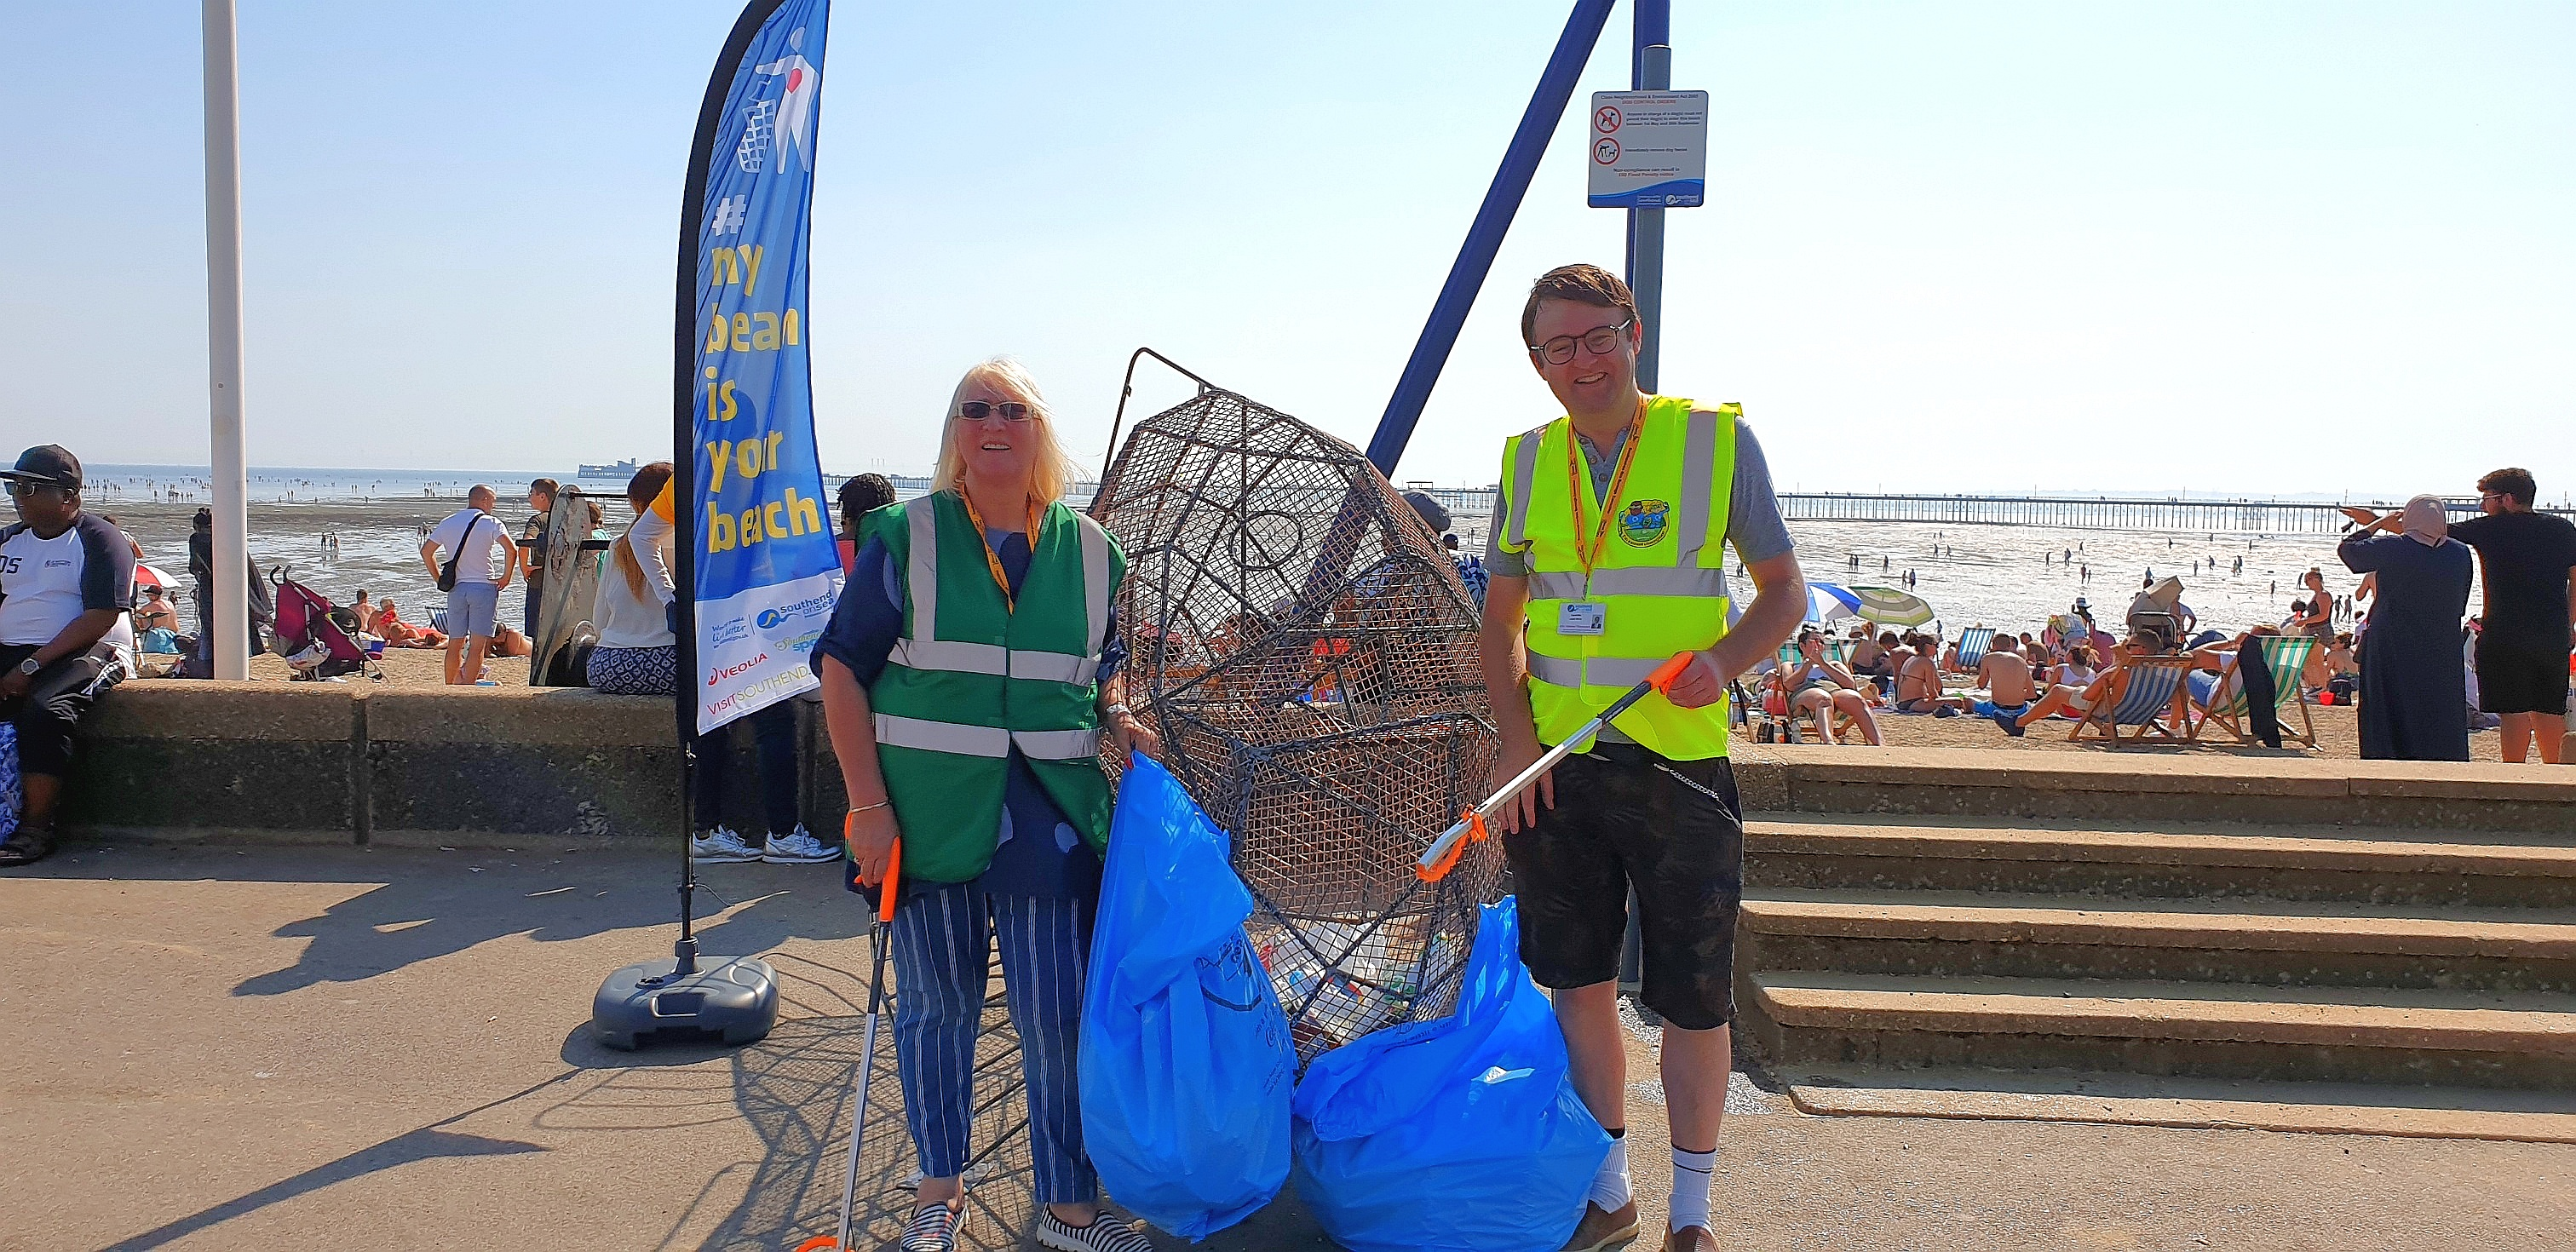 Cllr Mulroney and Cllr Thompson with the fish sculpture at City Beach.